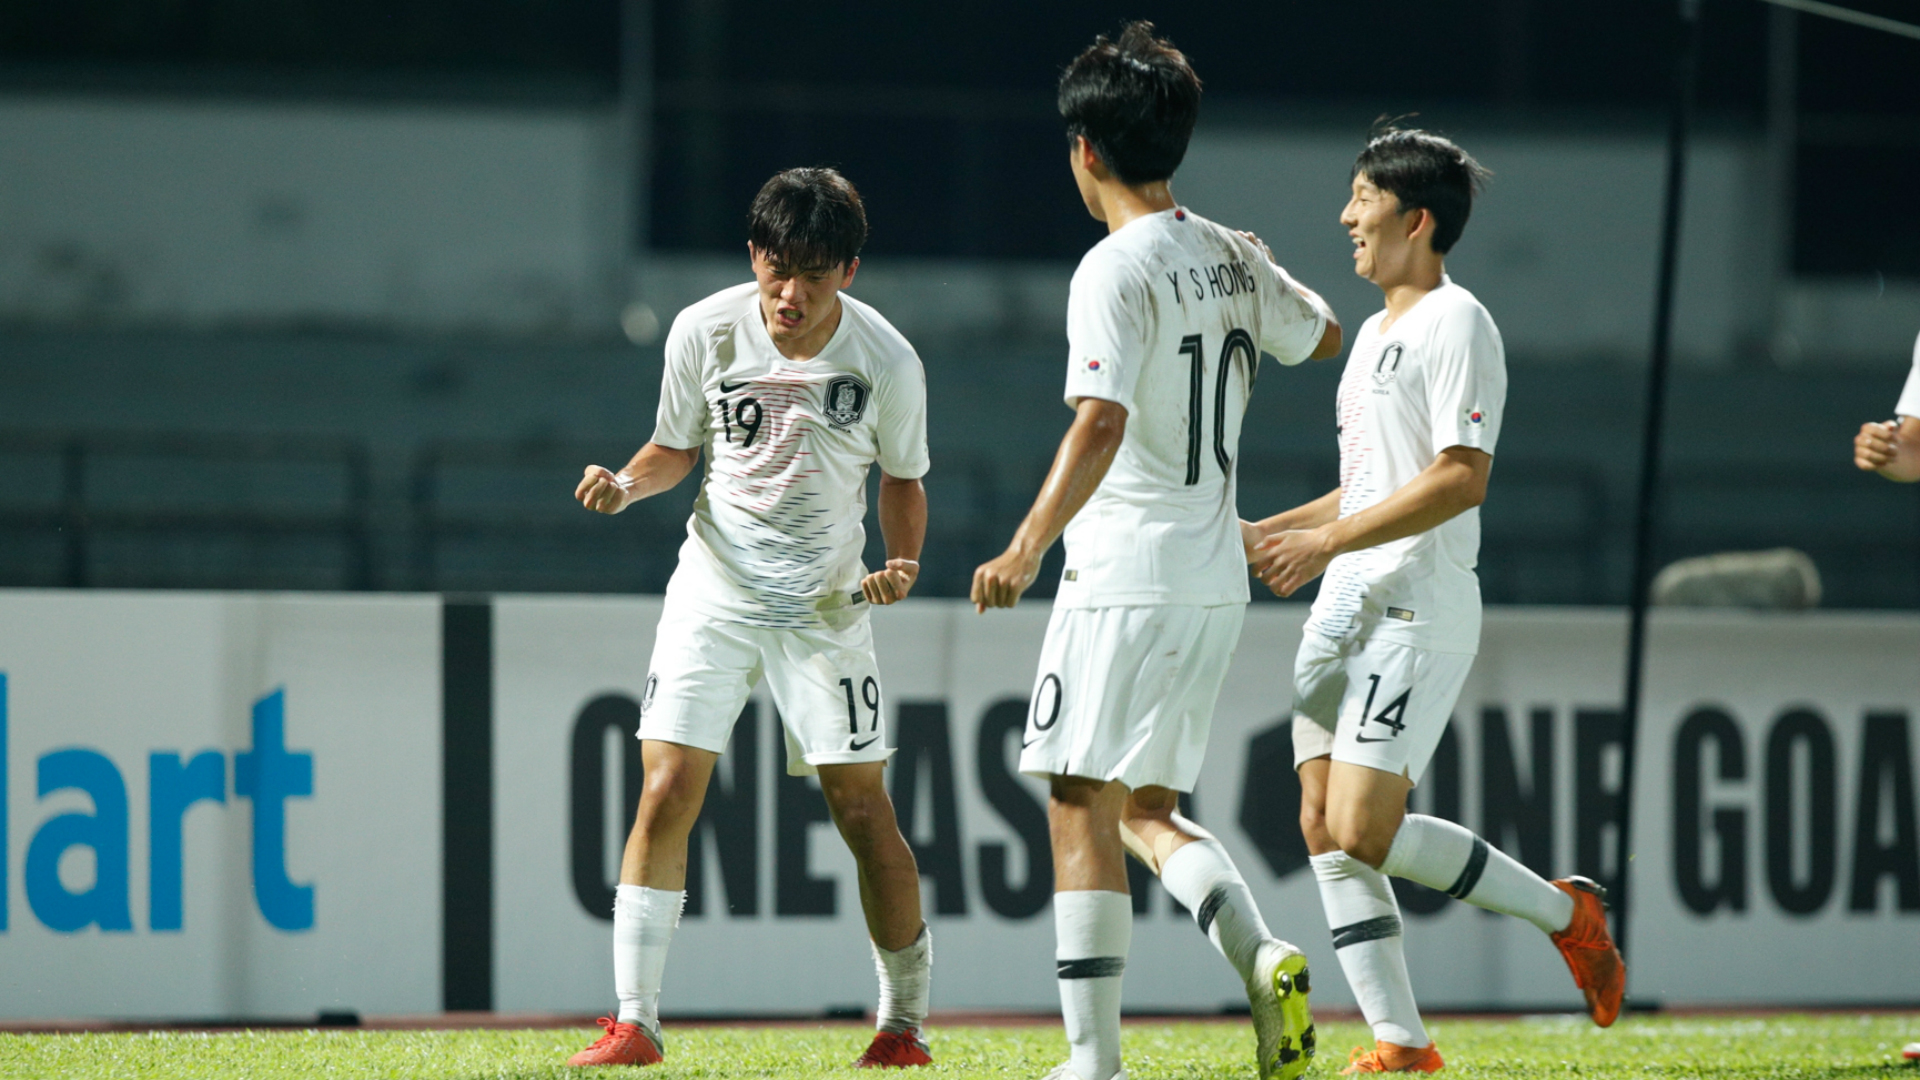 AFC U16 Championship 2020: Know Your Rivals - South Korea